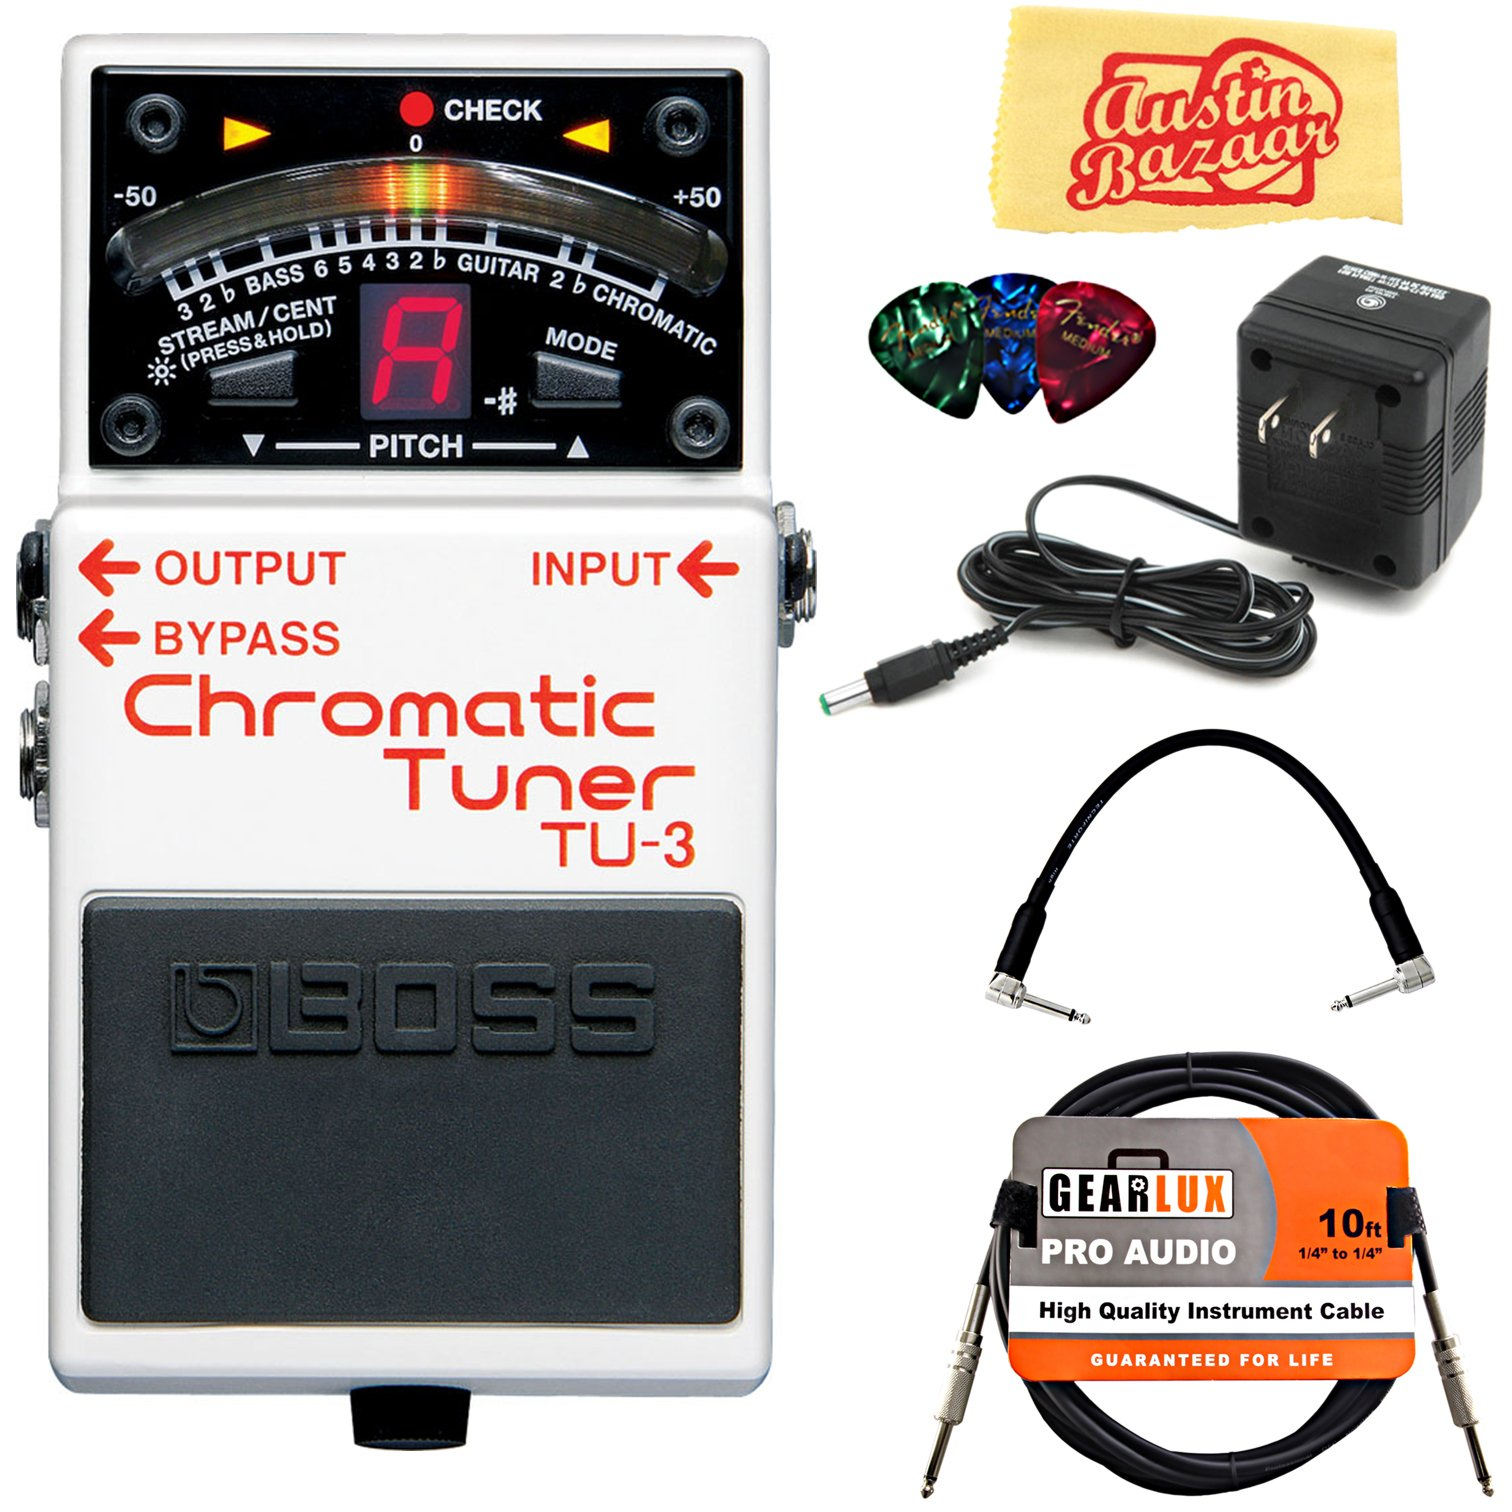 Boss TU-3 Chromatic Tuner Guitar Effects Pedal Bundle with 9V Power Adapter, Gearlux Instrument Cable, Patch Cable, Picks, and Polishing Cloth by BOSS